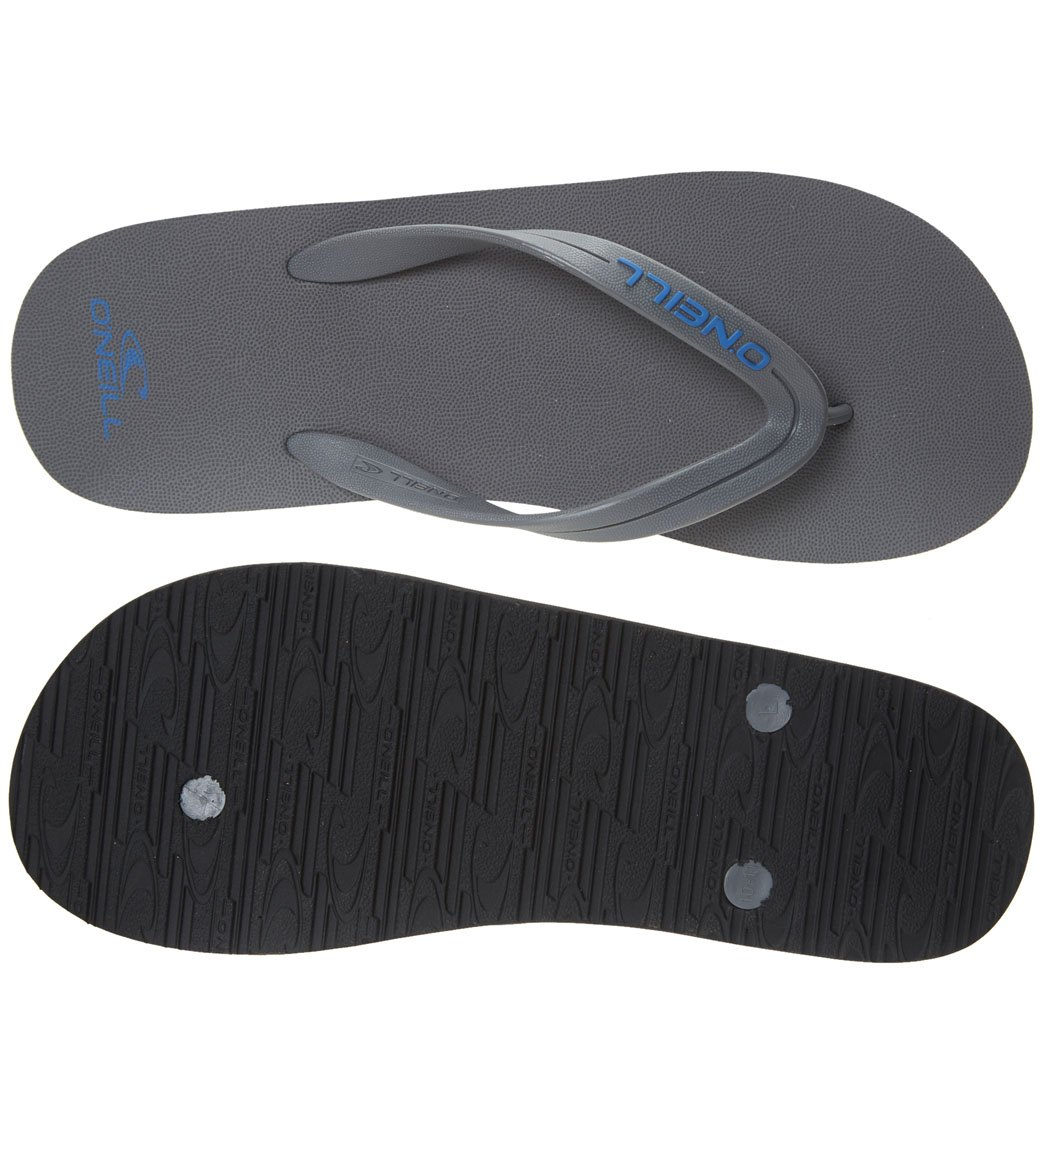 b13183a0f O Neill Men s Friction Flip Flop at SwimOutlet.com